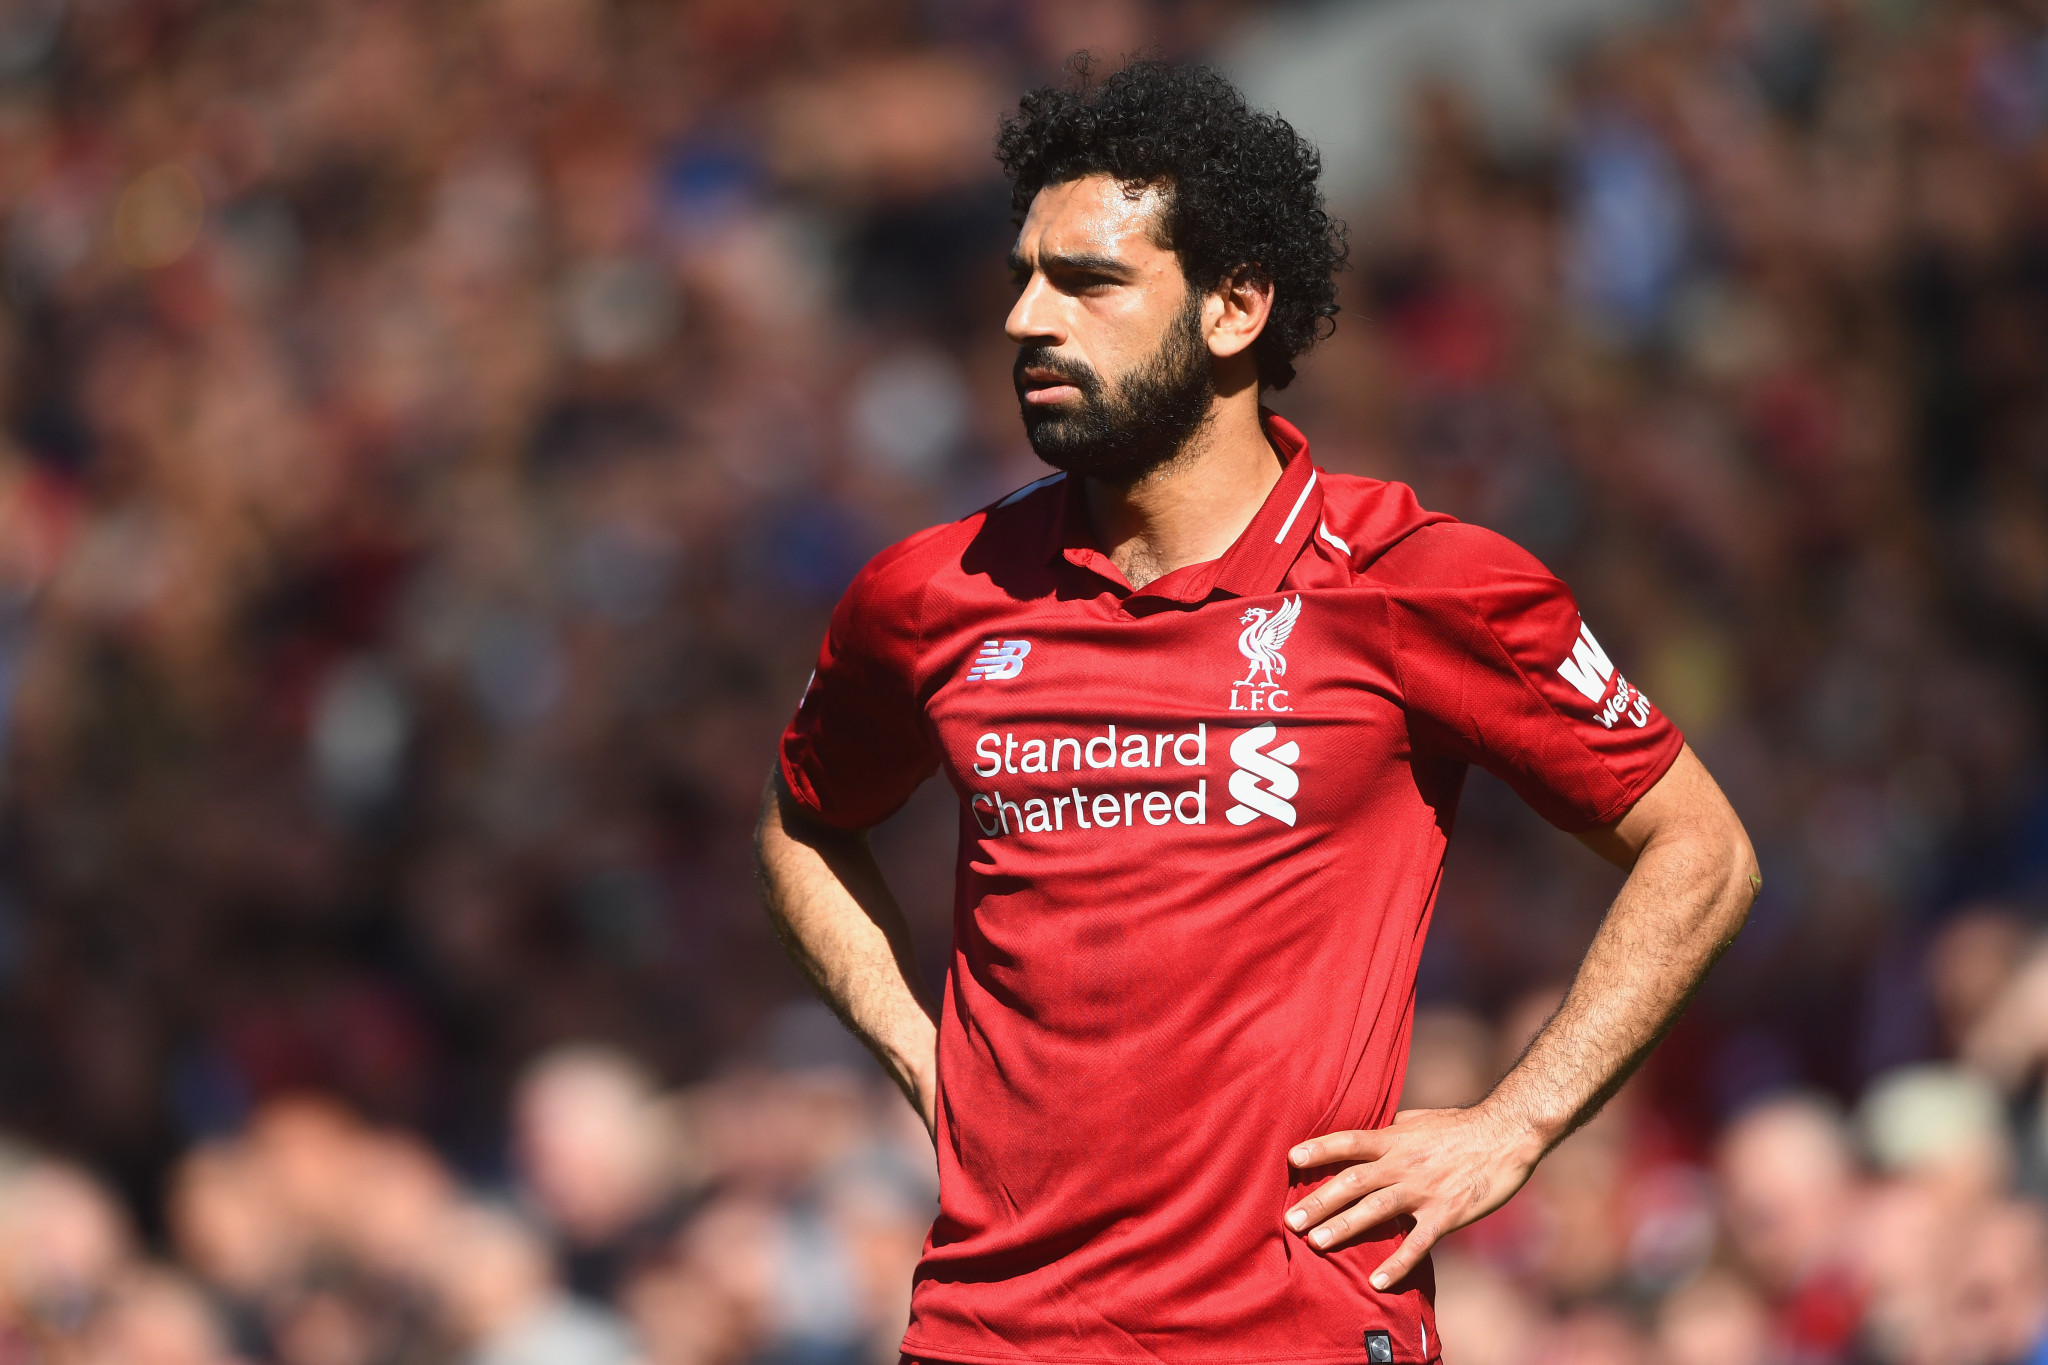 Mo Salah of Liverpool has hoovered up plaudits this season ©Getty Images